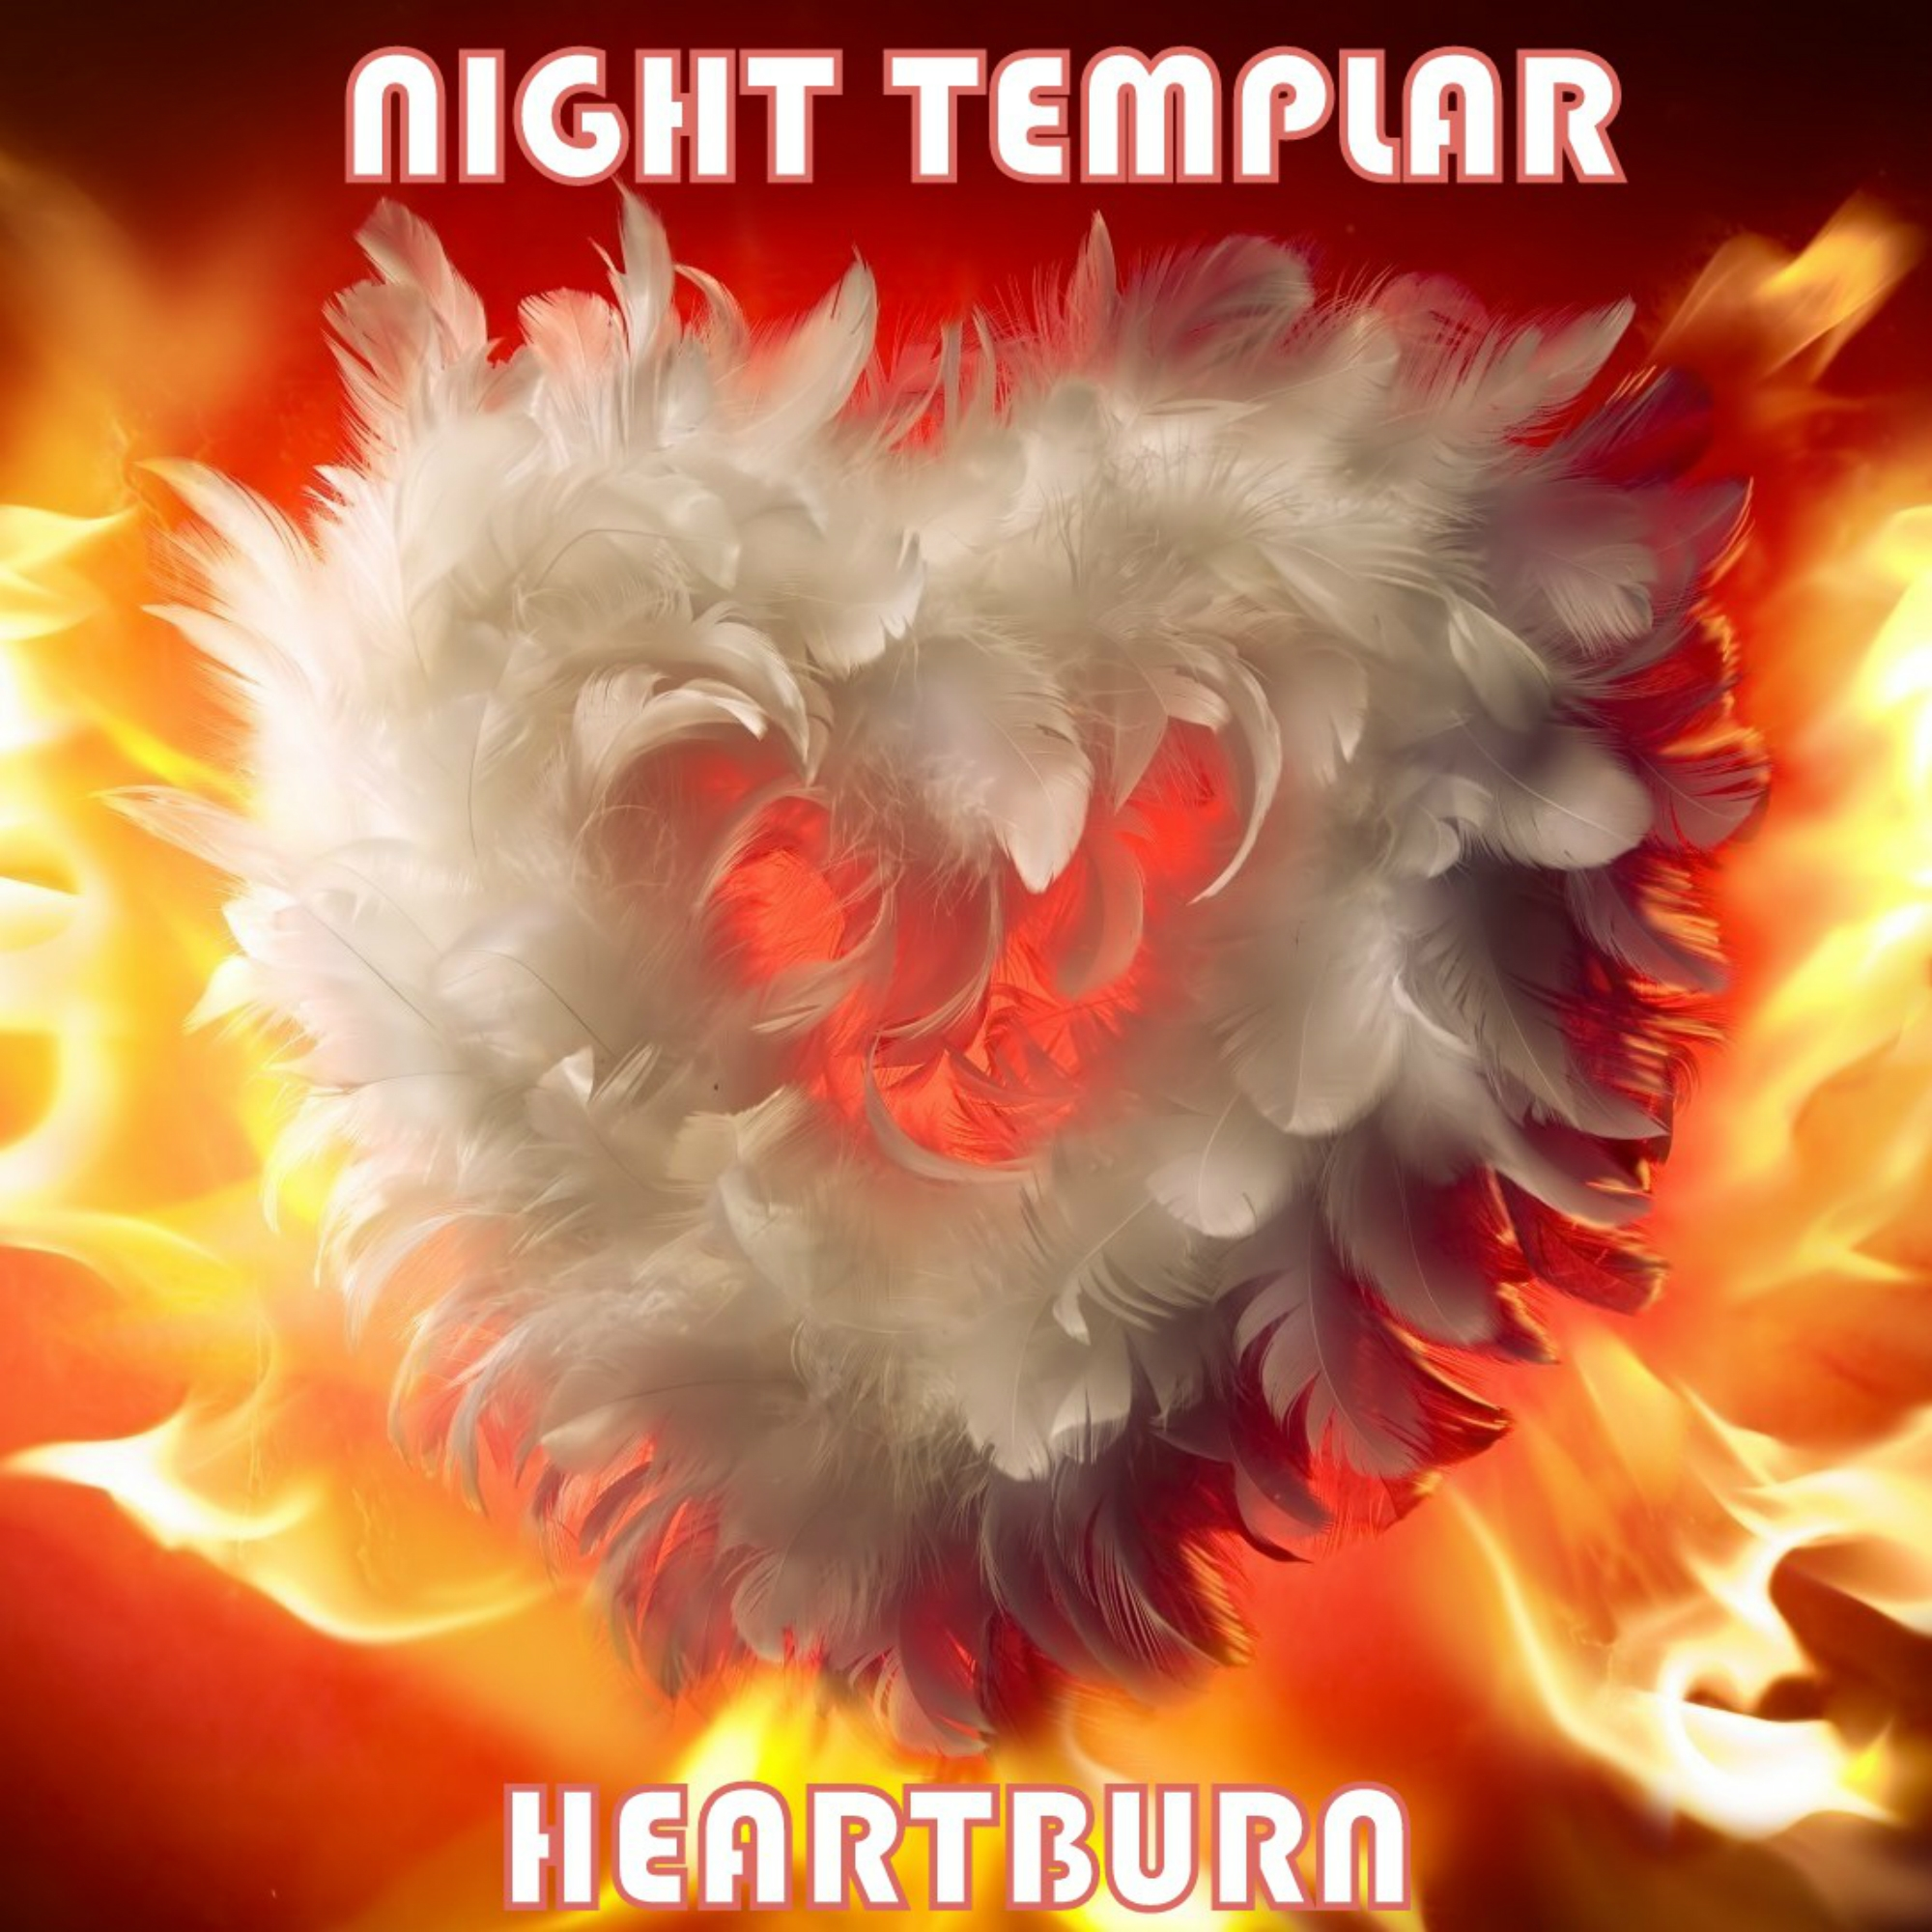 Night Templar - Fundamento Ruino (Original Mix)